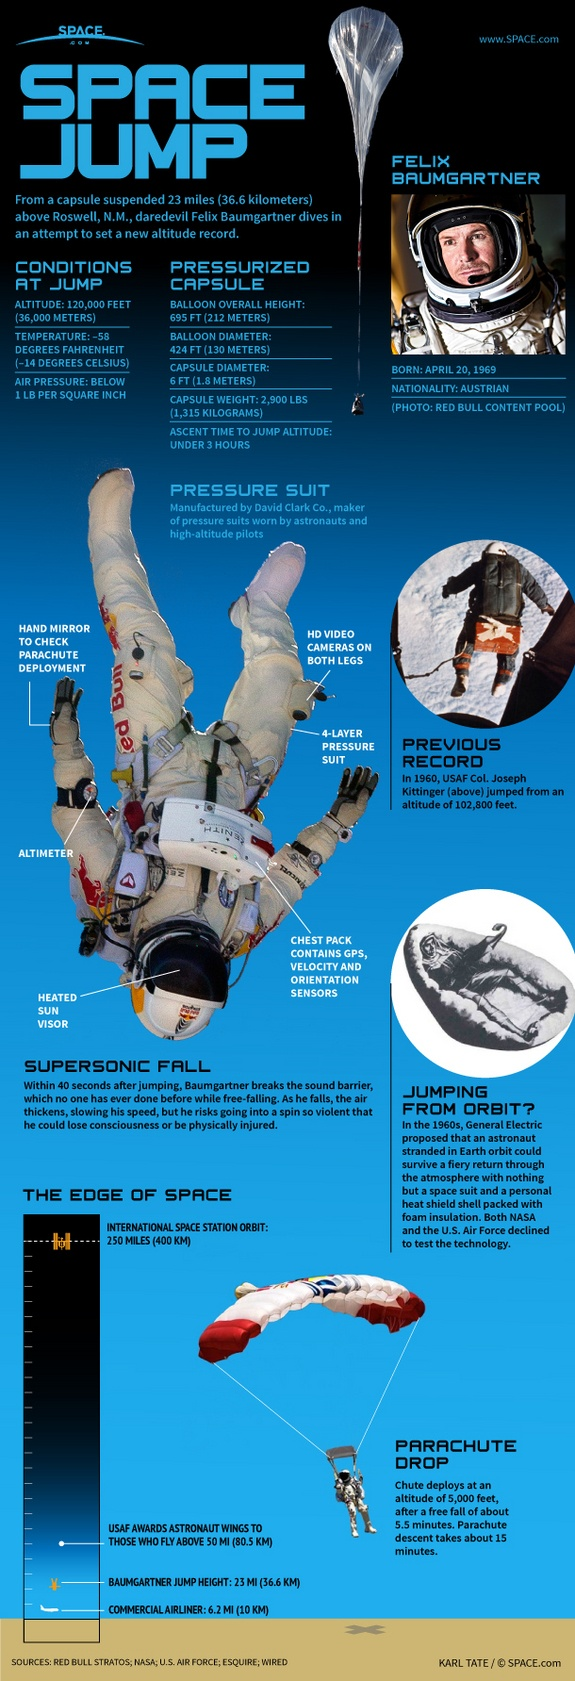 Space Jump: How Daredevil's Record-Breaking Supersonic Skydive Works